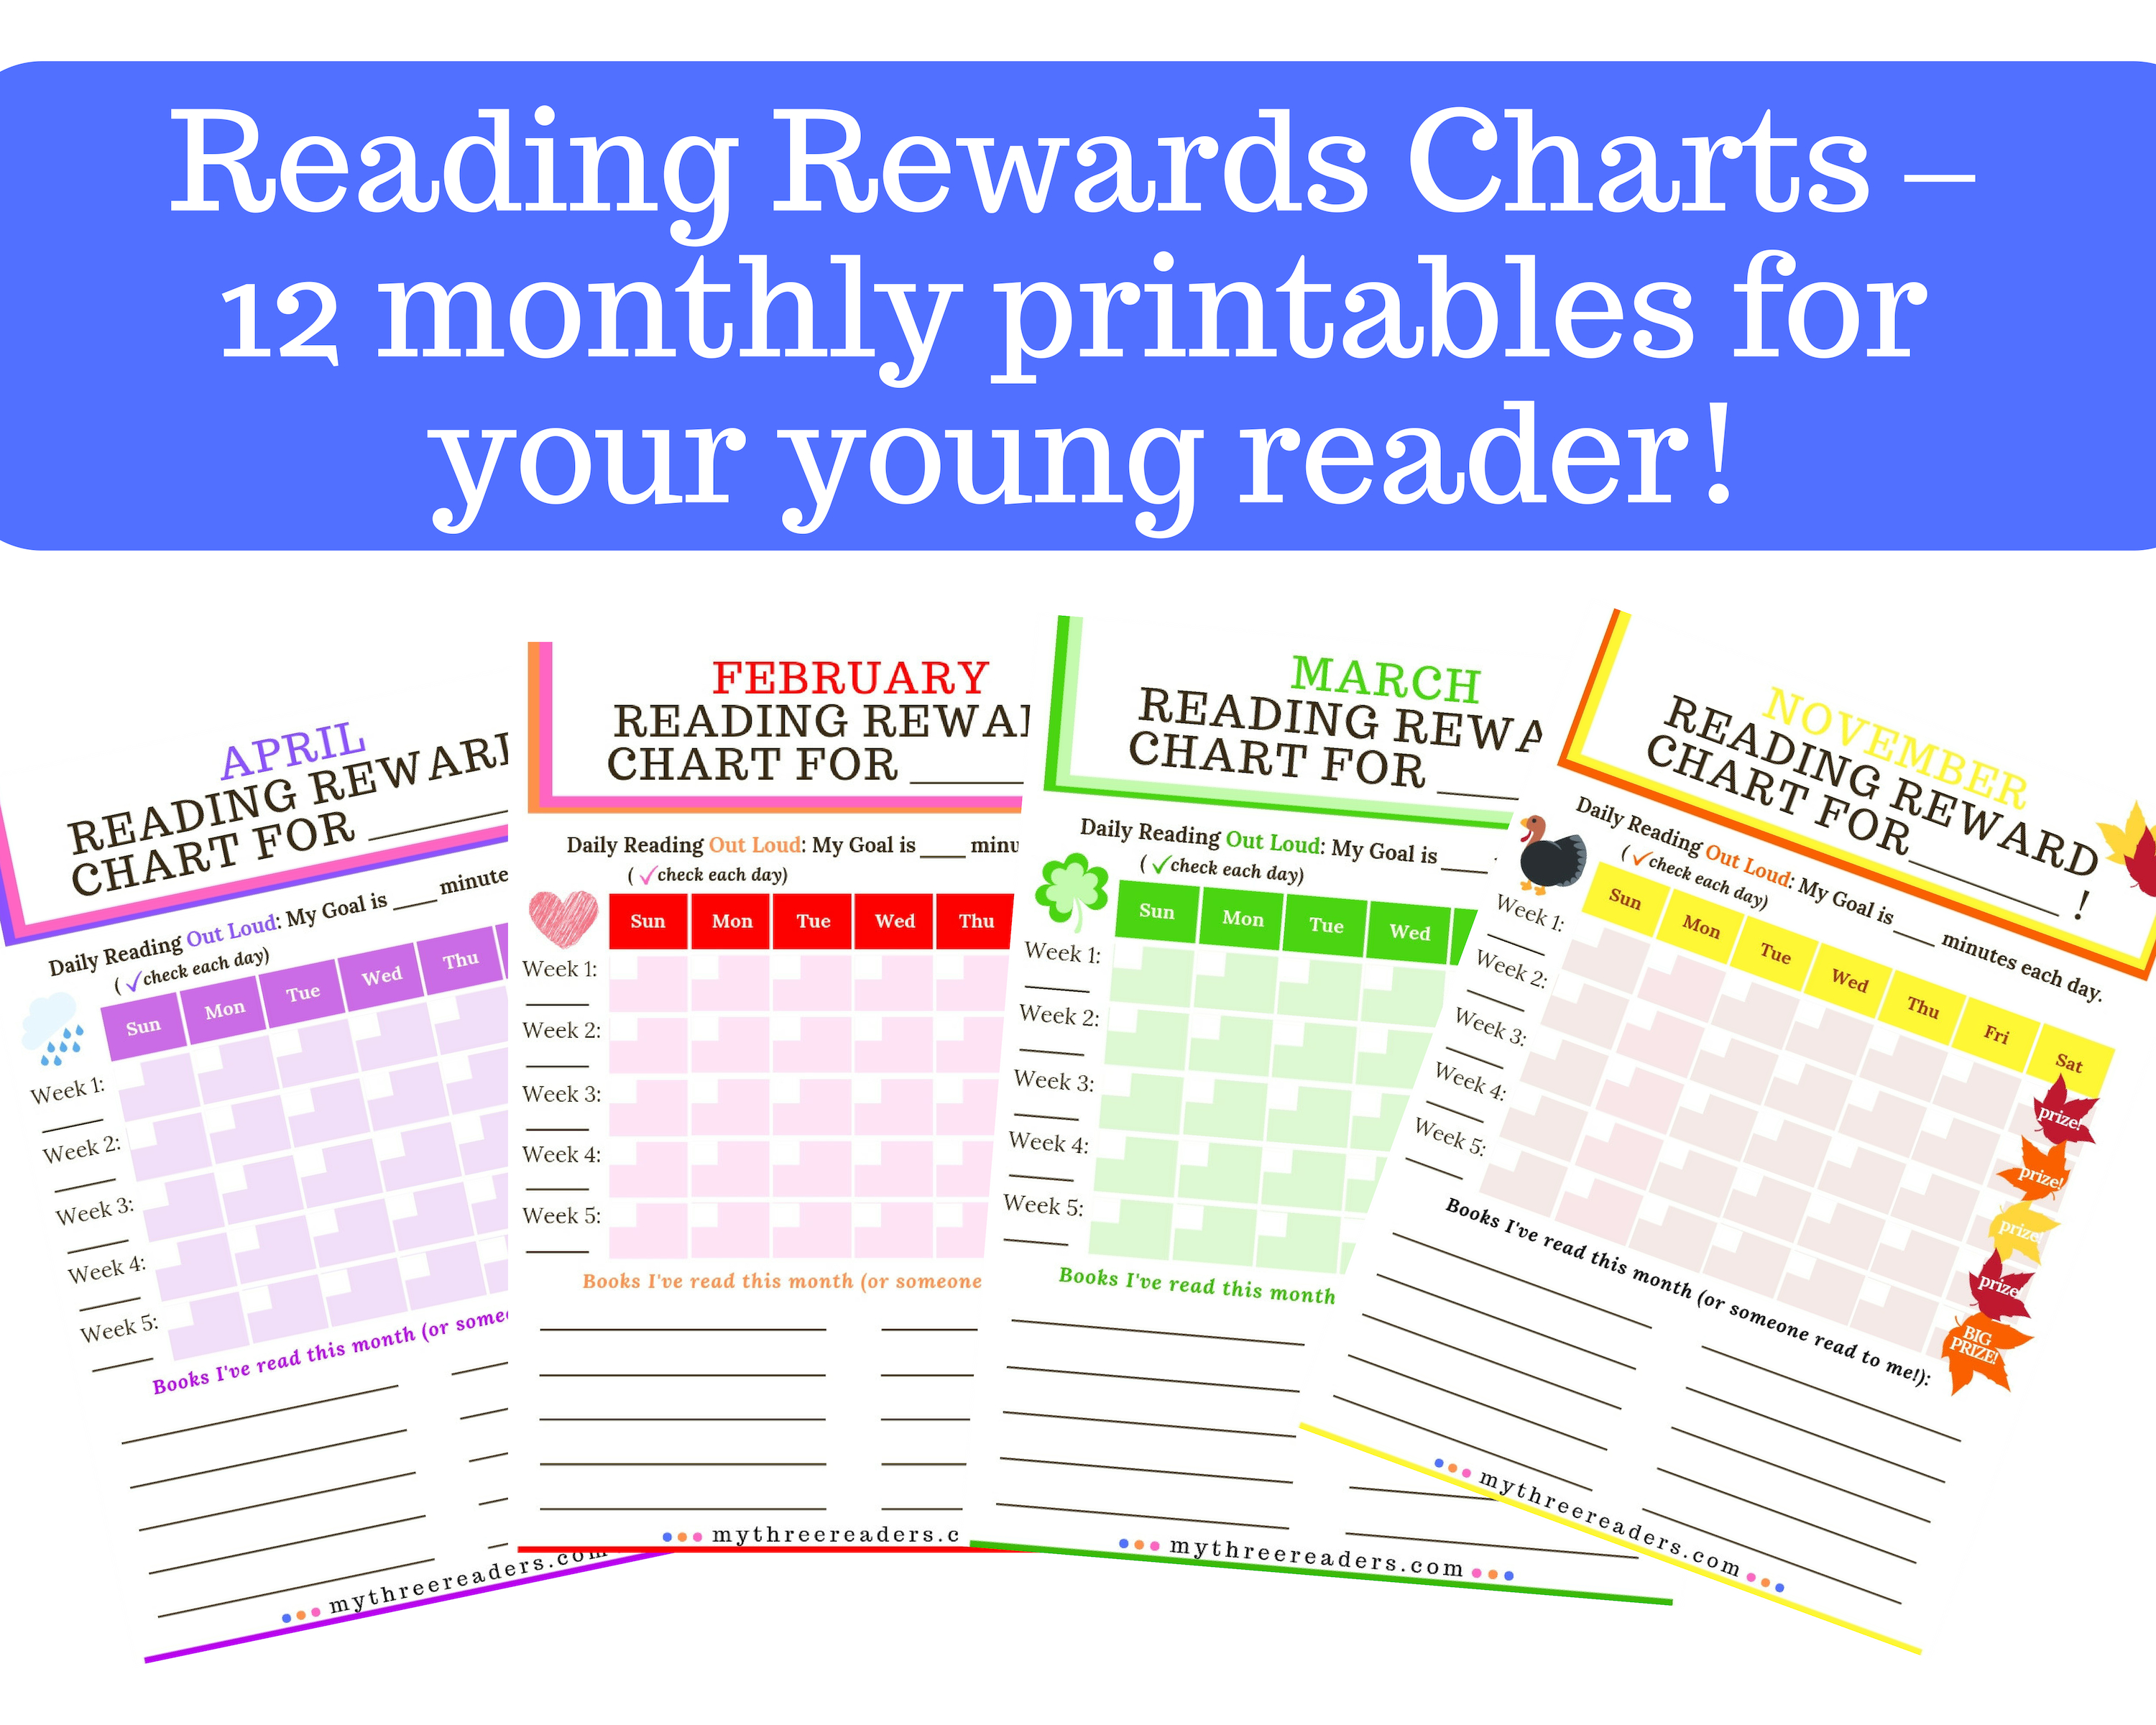 Reading Rewards Charts – 12 monthly FREE Printables for Your Young Reader